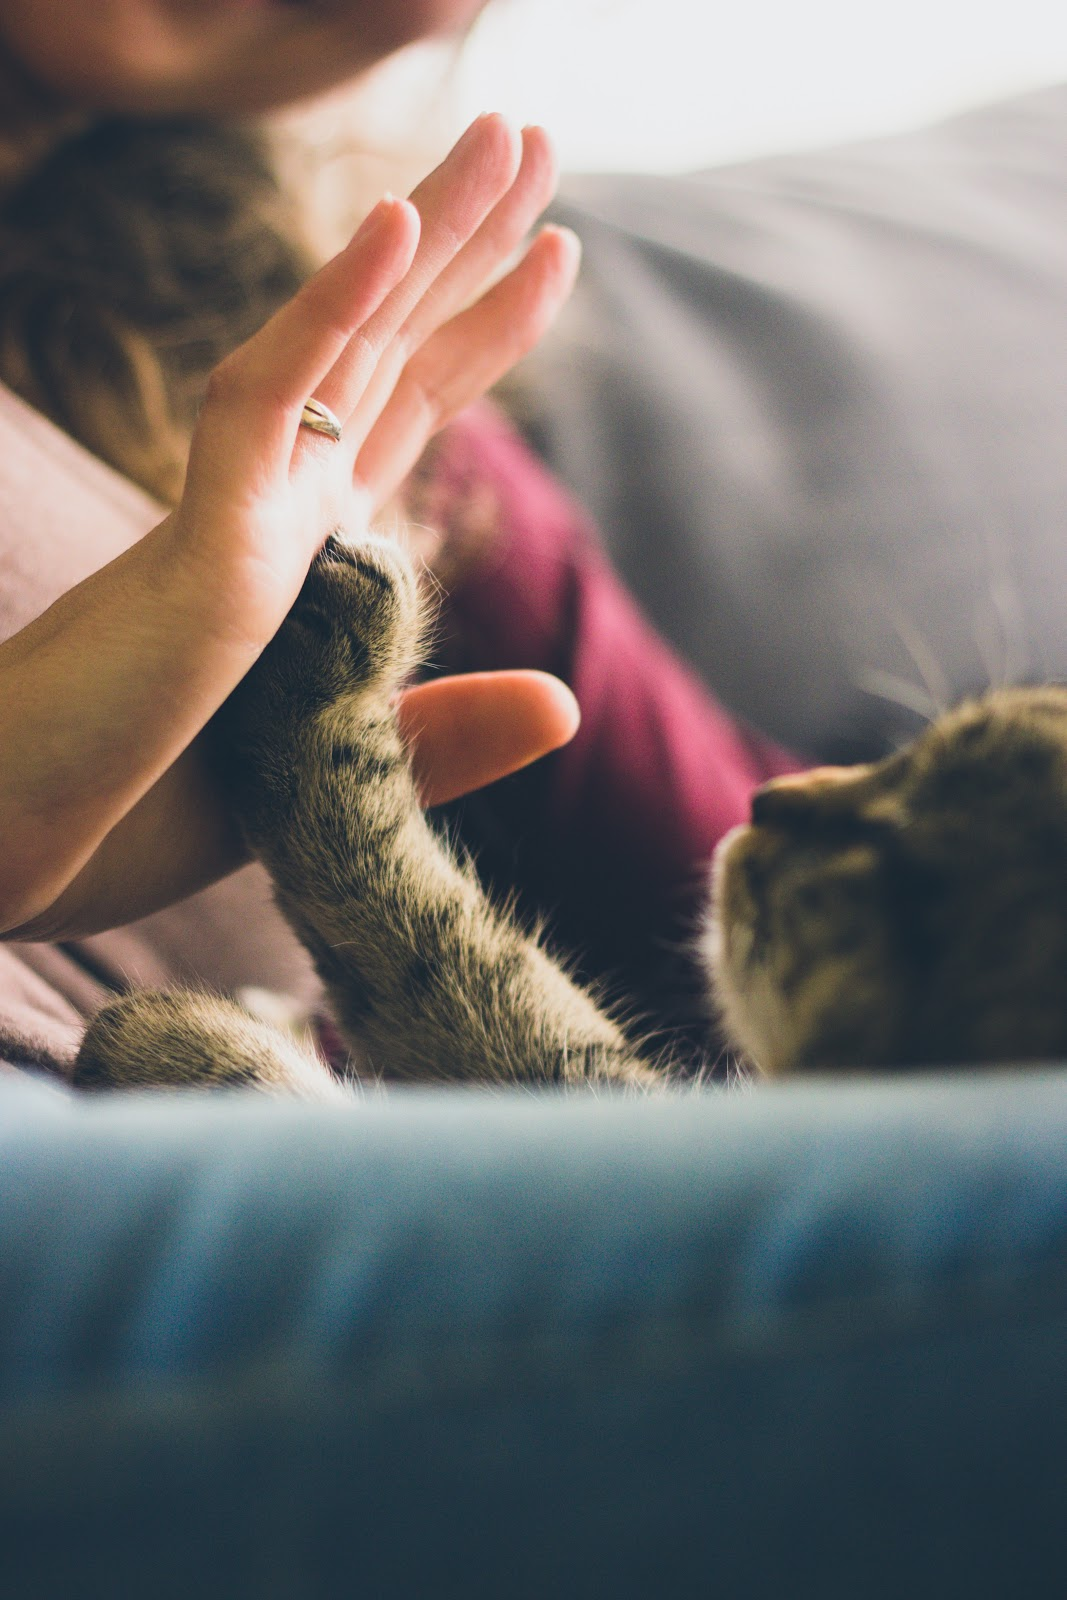 5 Ways To Remember Your Pet After They Have Gone